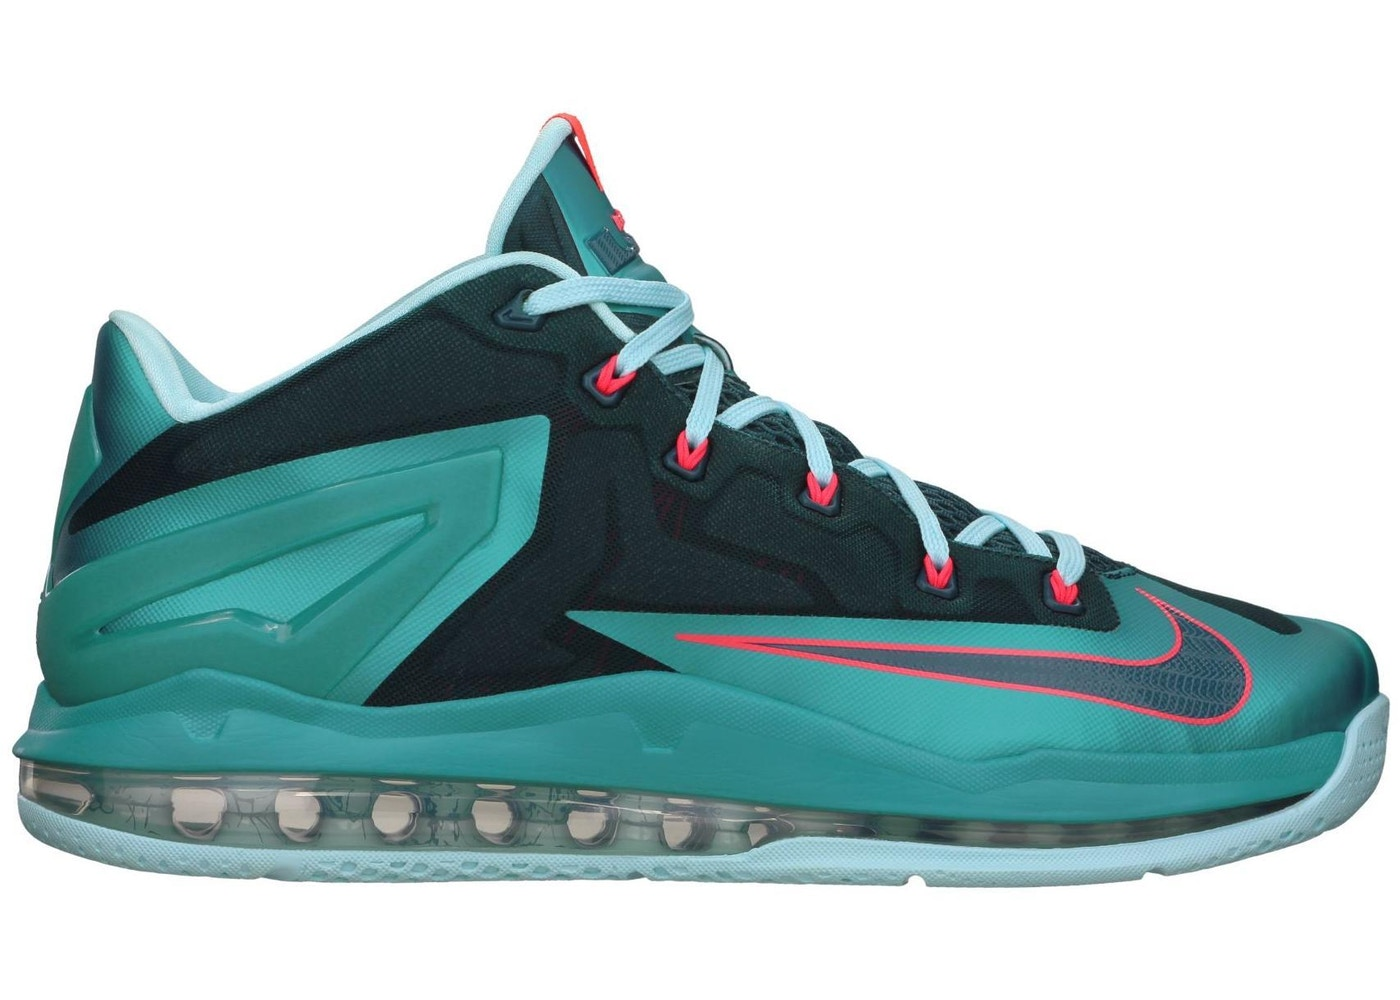 huge selection of 1b24f 82310 LeBron 11 Low Turbo Green